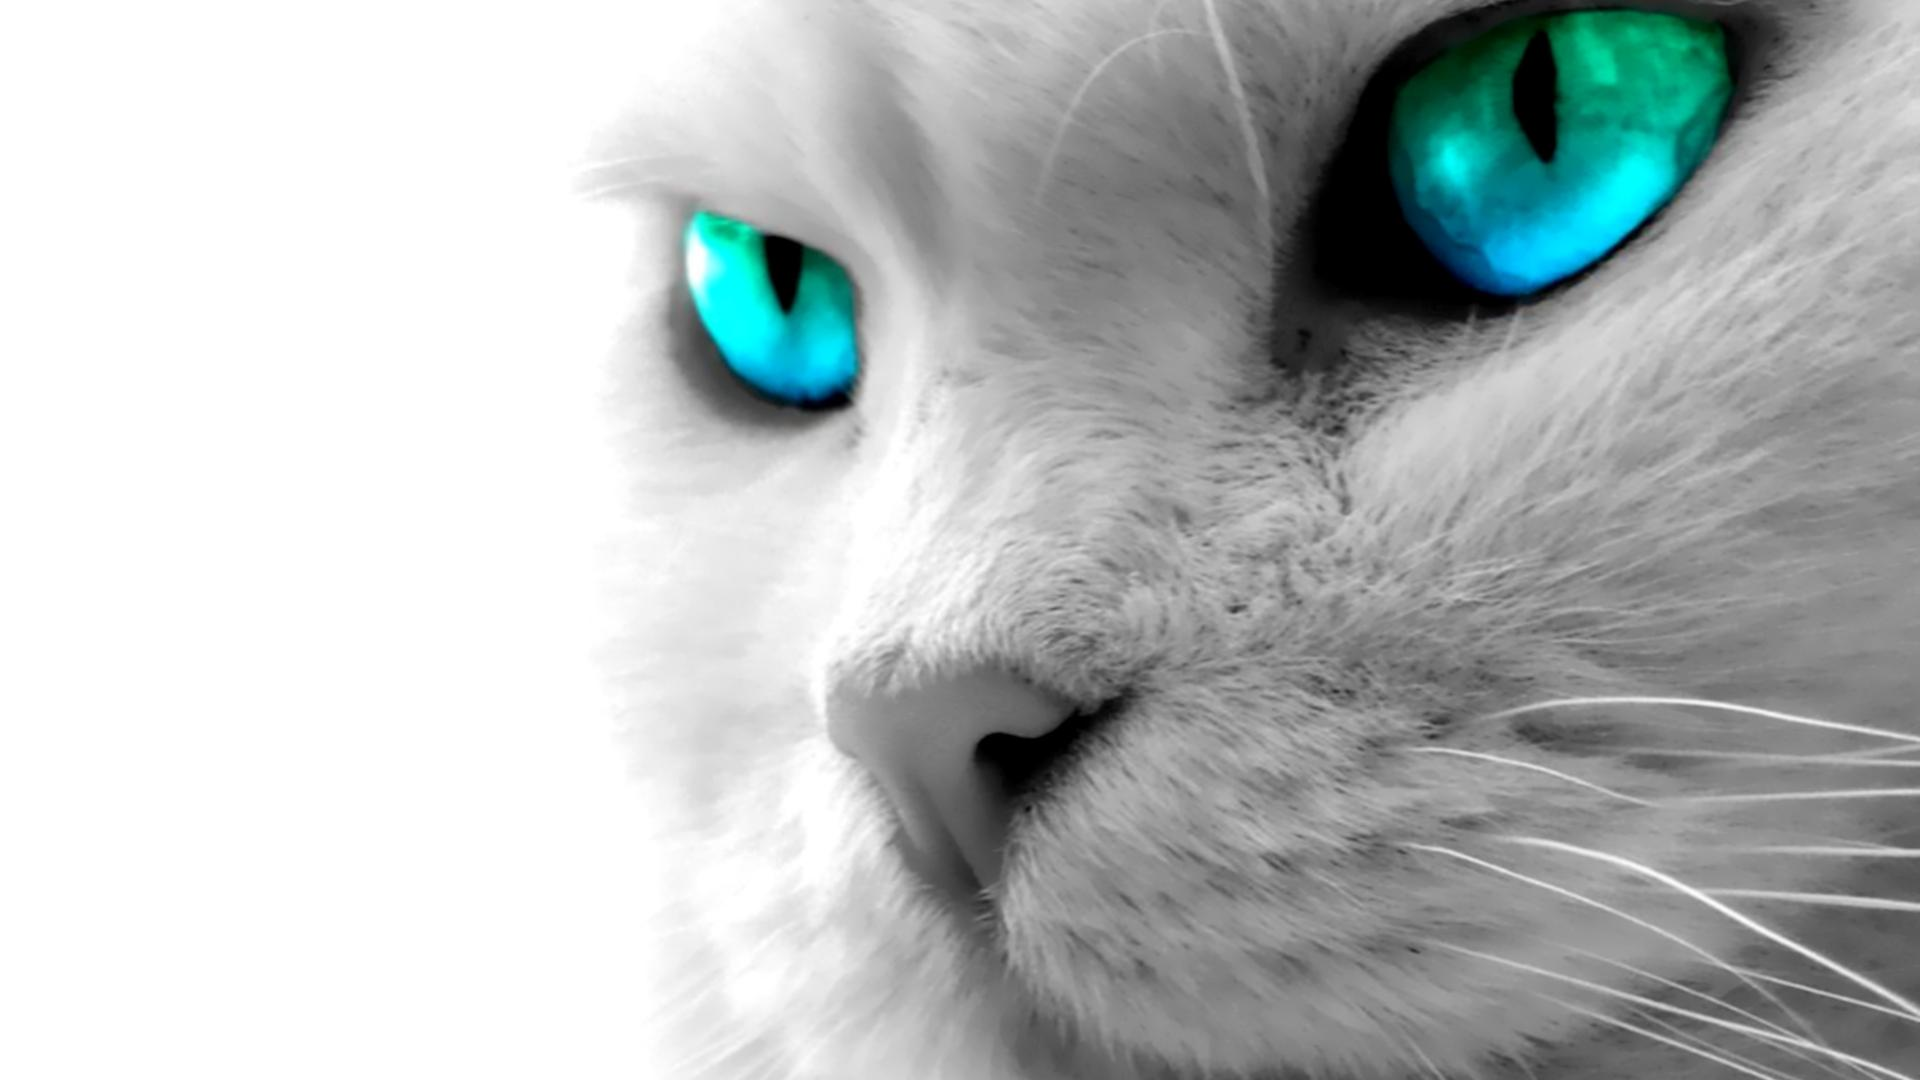 Cat Blue Eyes High Definition Wallpaper 1920x1080 Full HD Wallpapers 1920x1080